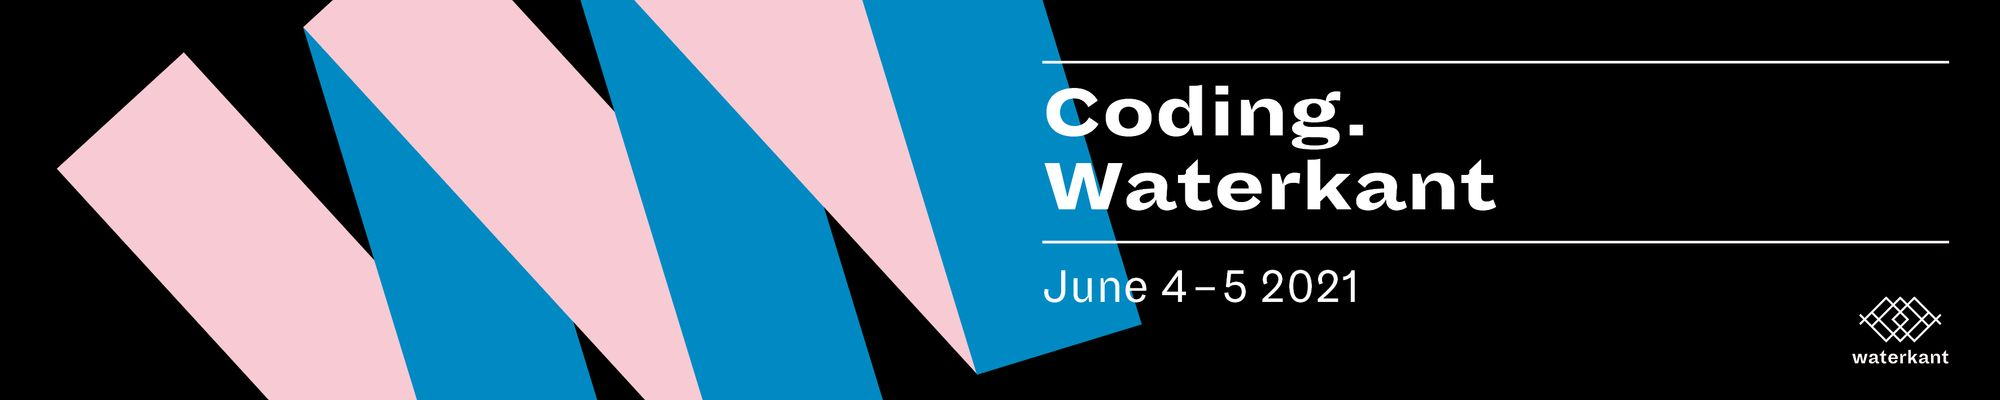 Registration for the Coding.Waterkant 2021 is open!